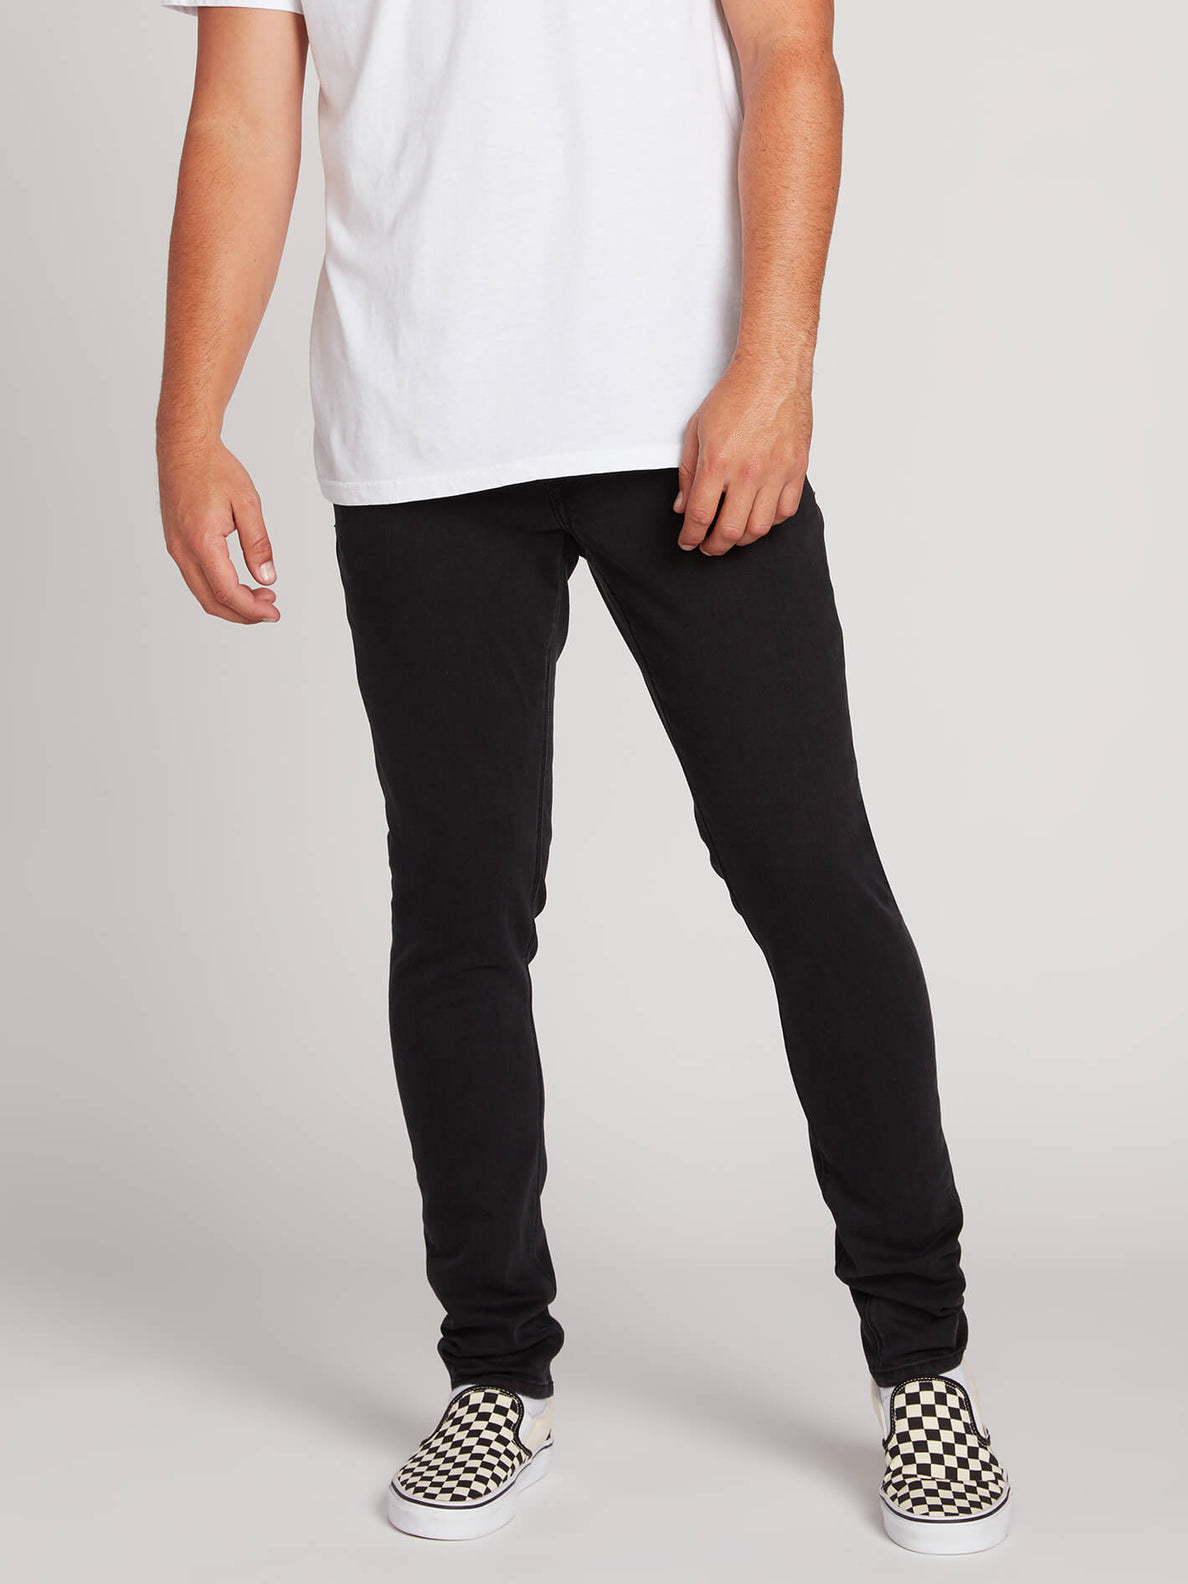 2X4 Tapered Skinny Fit Jeans - Ink Black (A1931610_INK) [1]